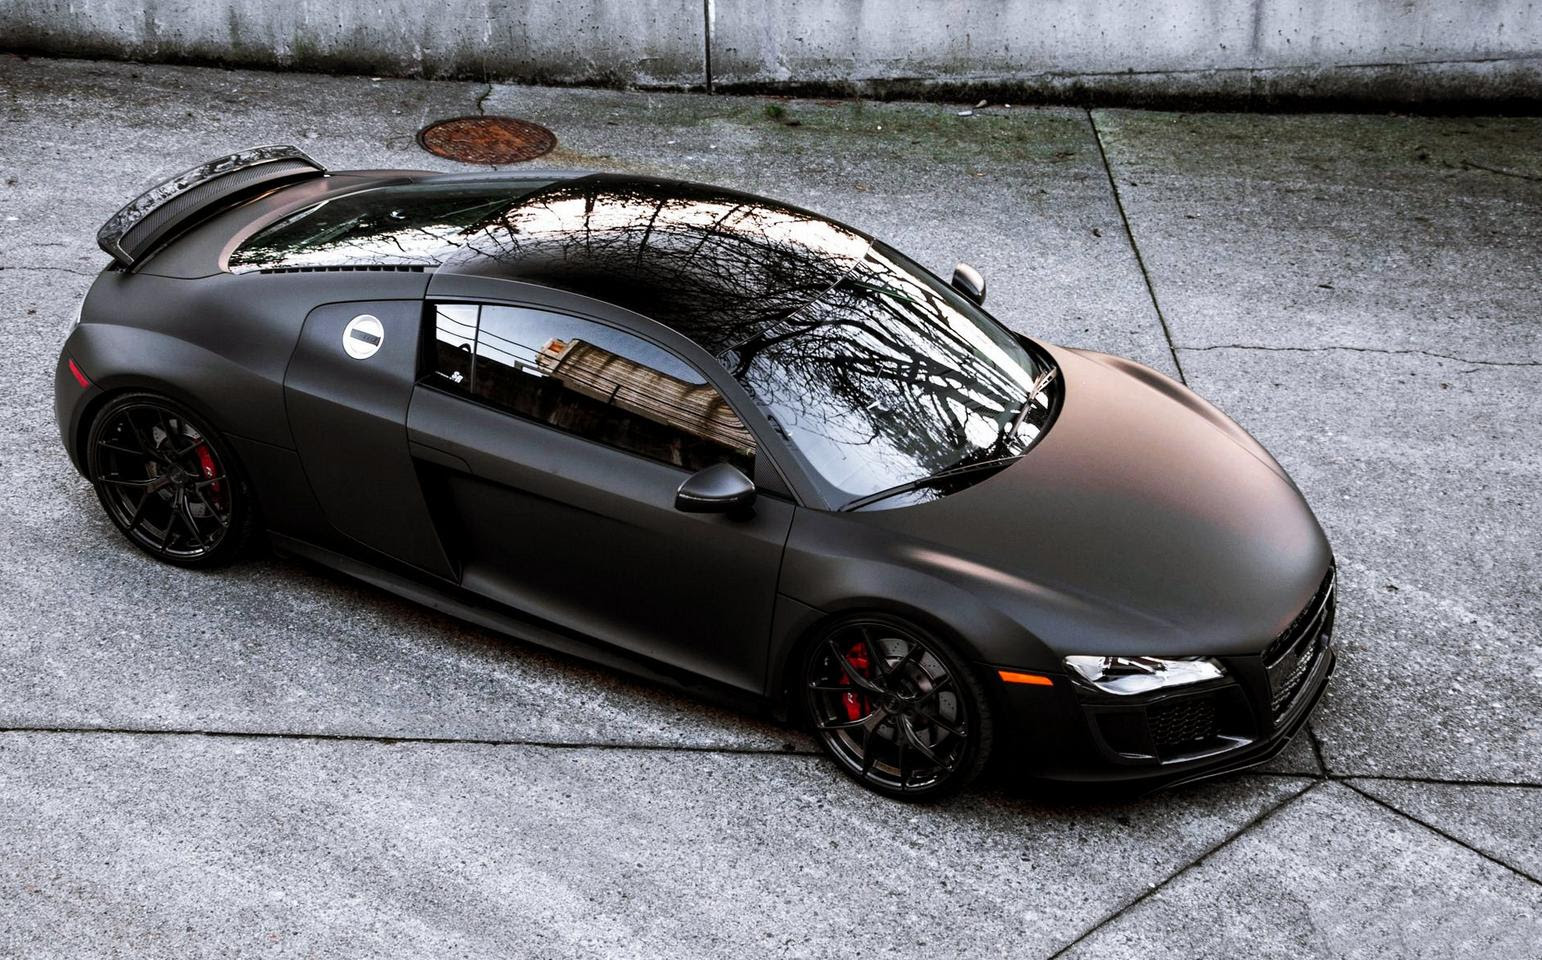 Audi R8 Matte Black And Gold Supercars Gallery